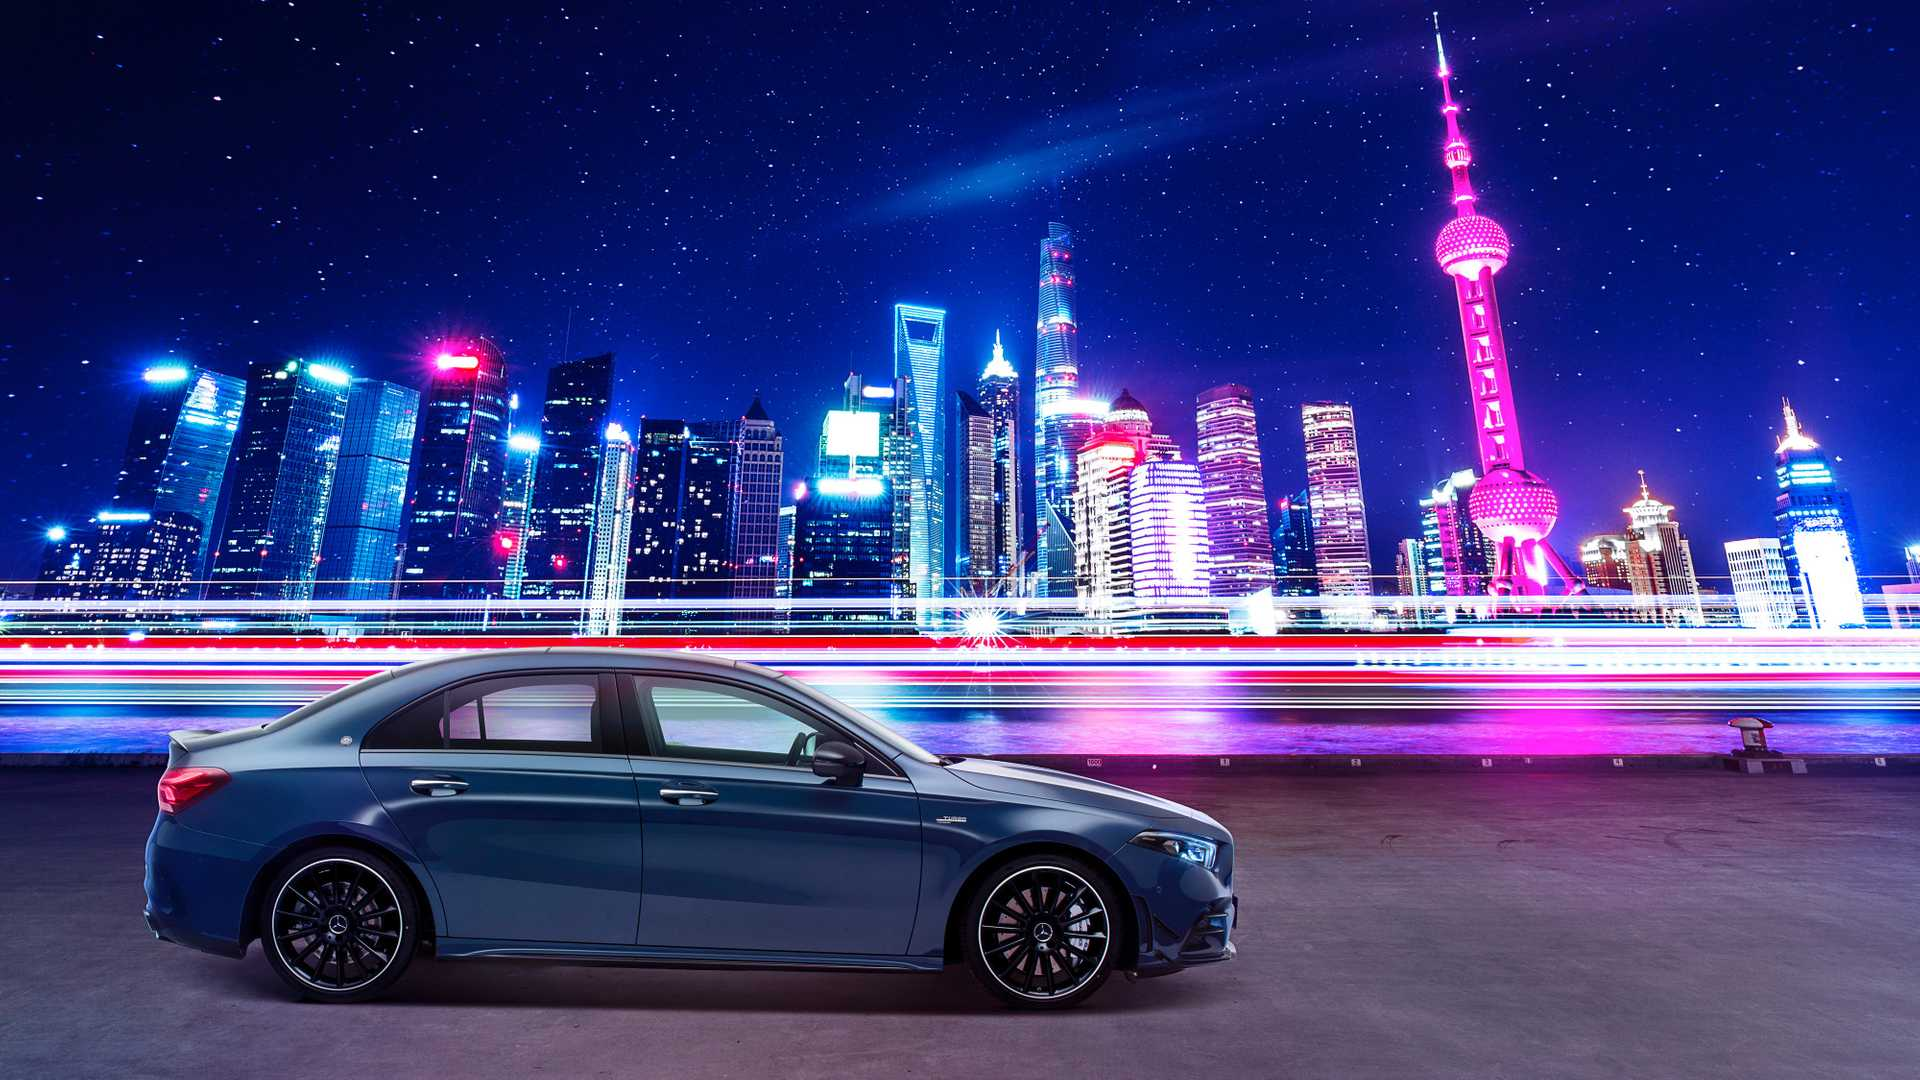 2020 Mercedes-AMG A35 L Sedan 4MATIC Side Wallpaper (4)